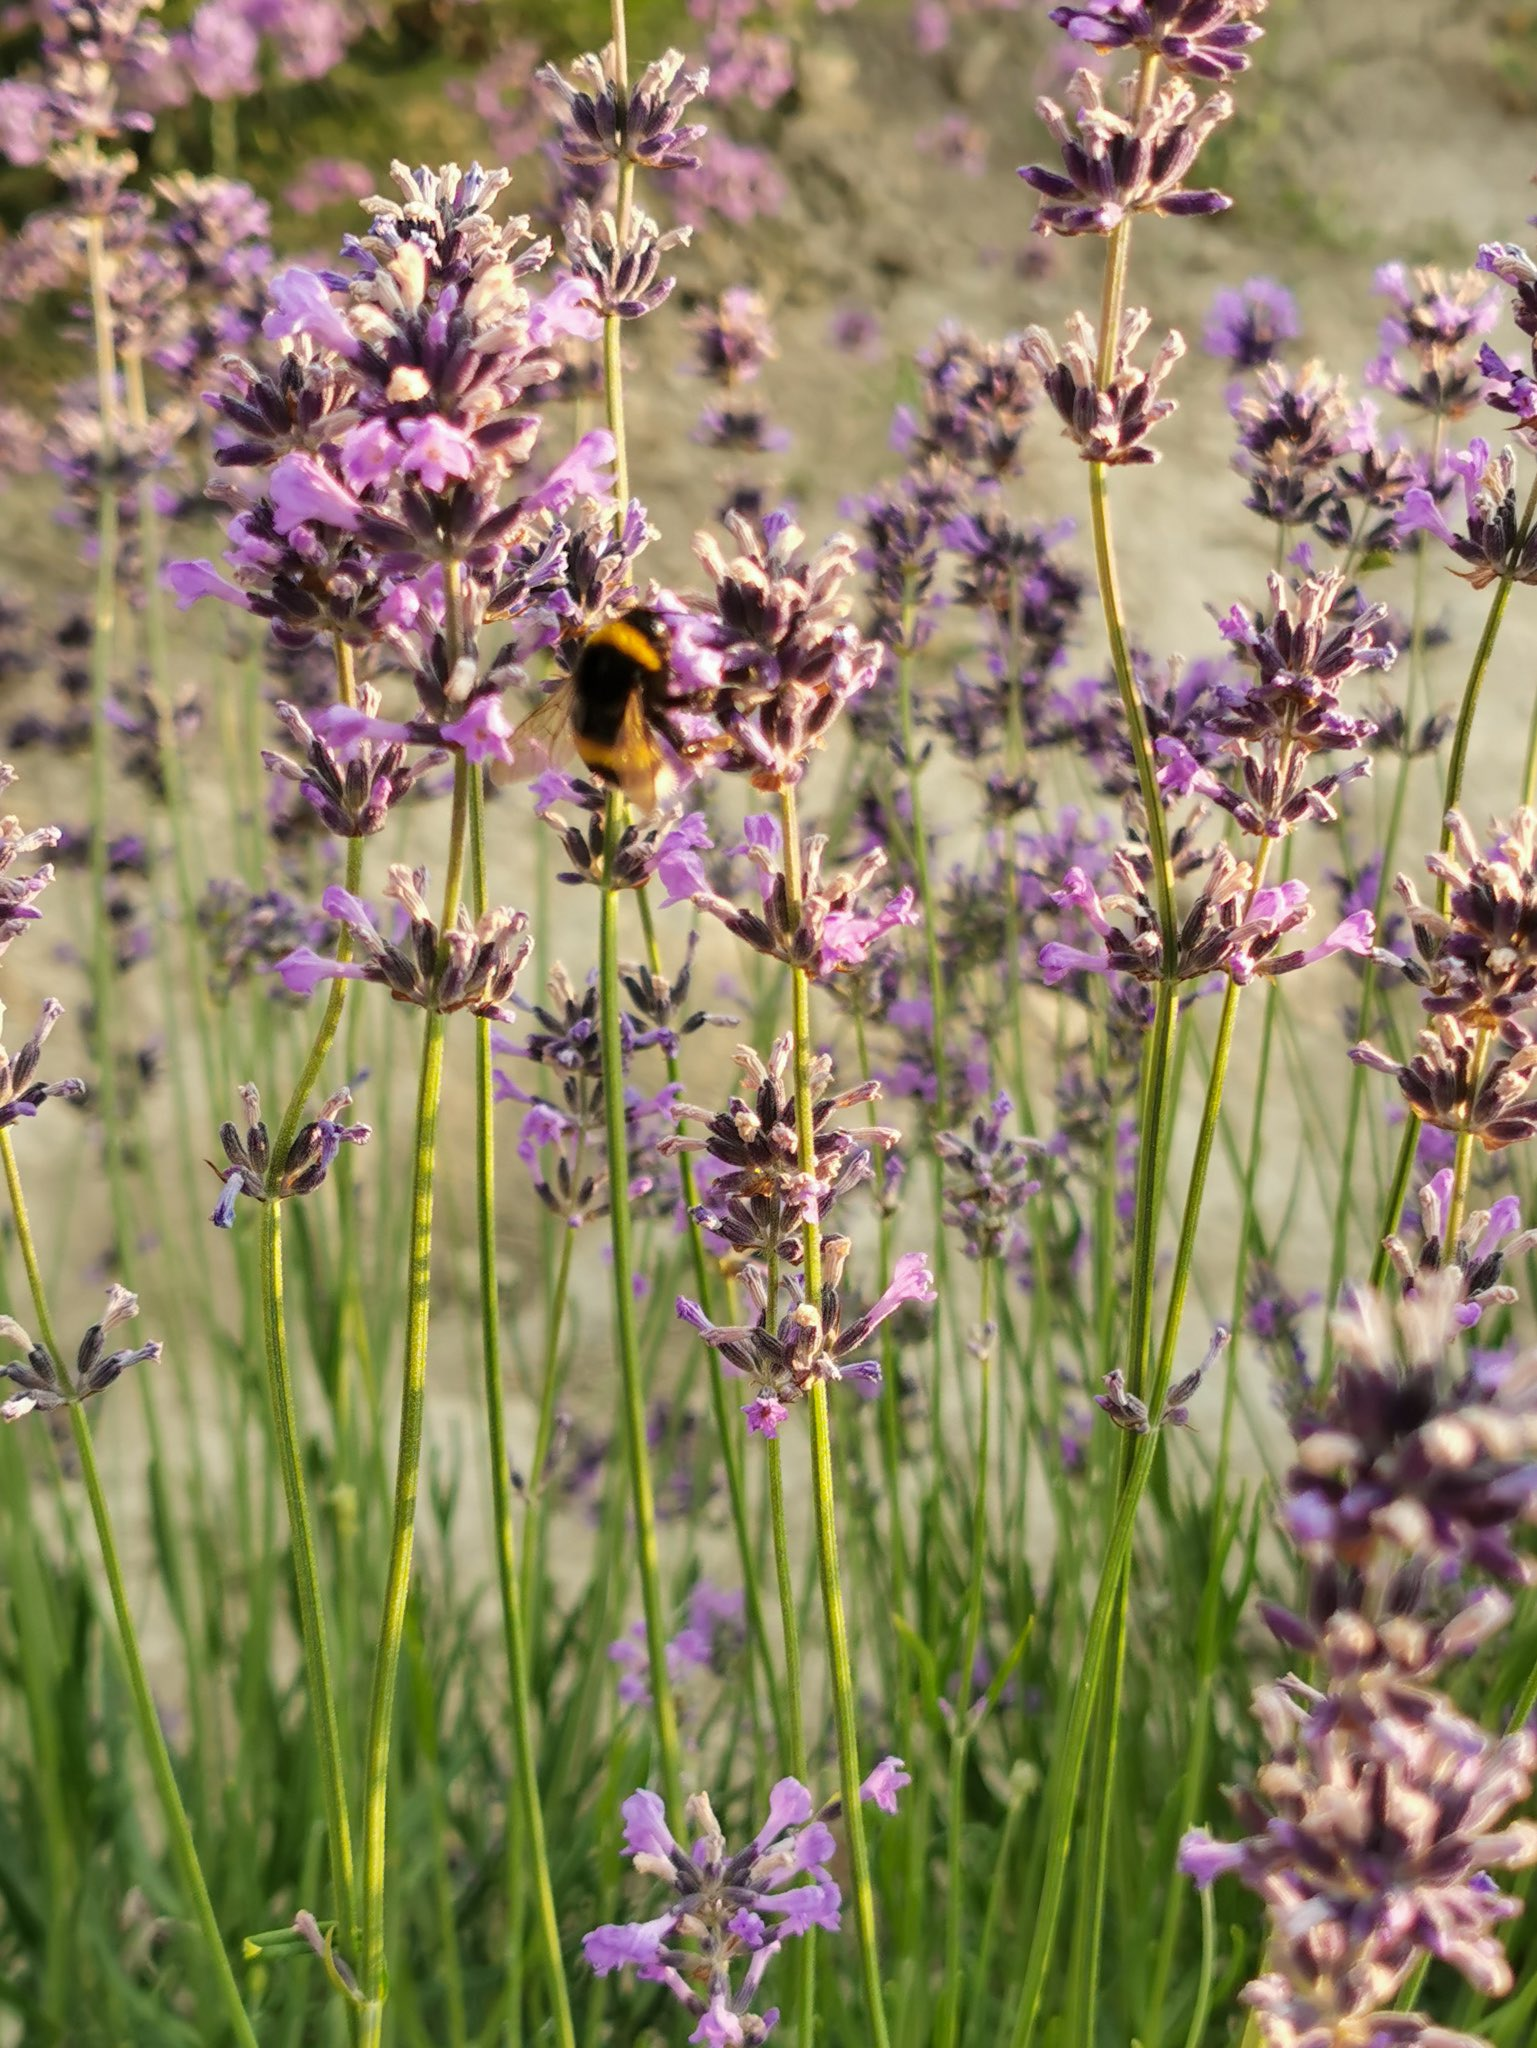 Lavender flowers with bumblebees